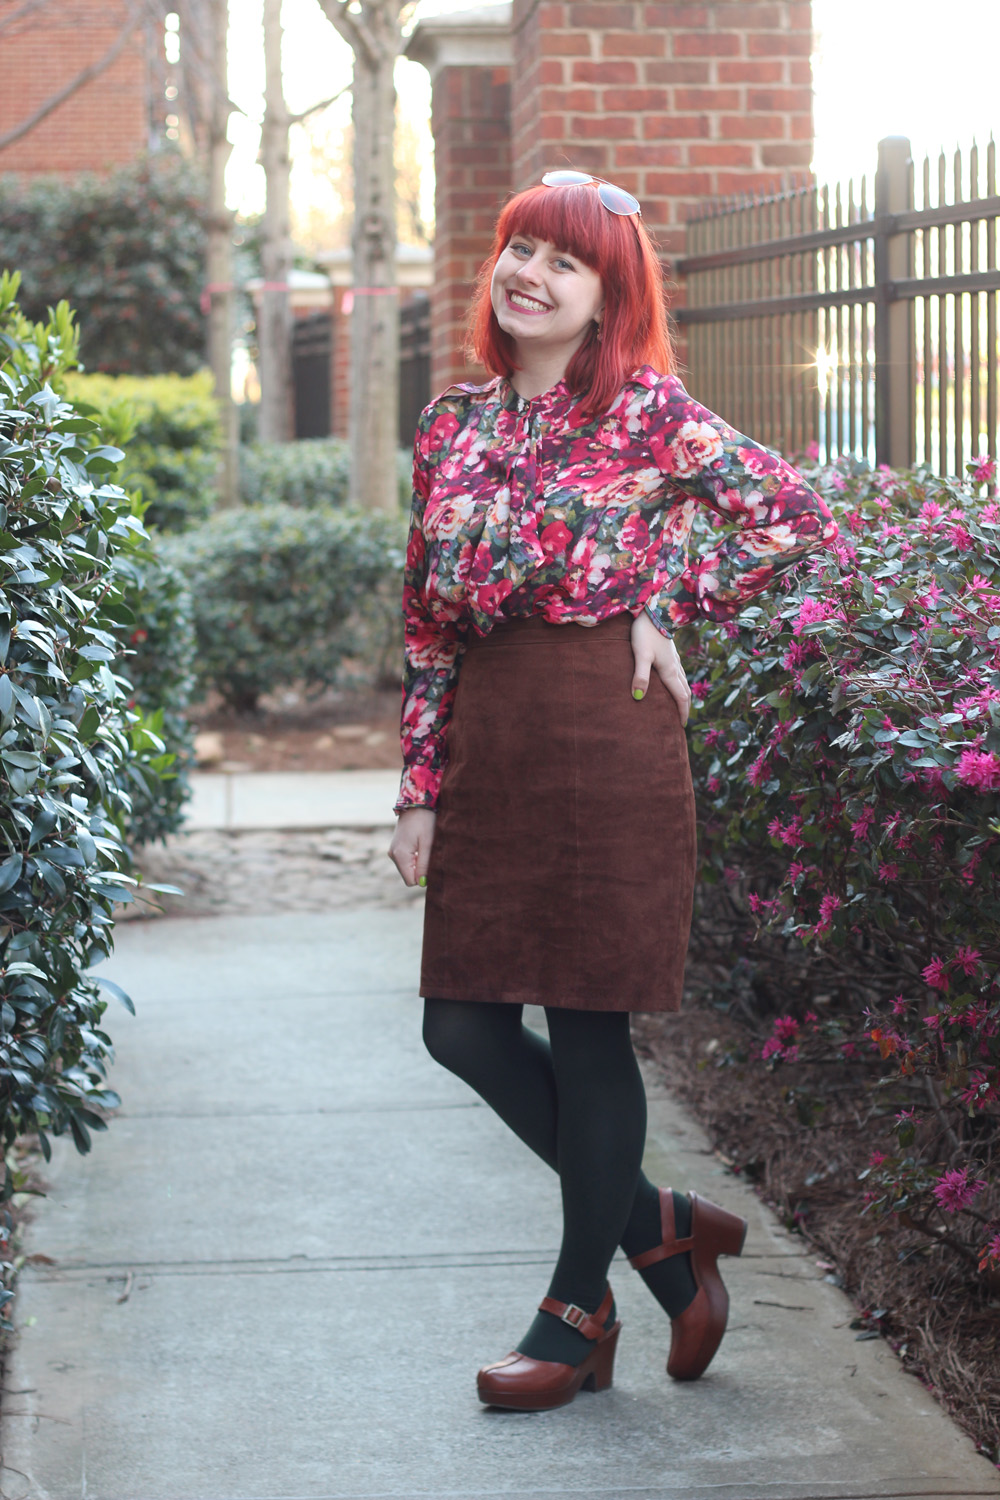 e3e494013 Suede Pencil Skirt, Digital Floral Print Blouse, Forest Green Tights, and  Brown Clogs